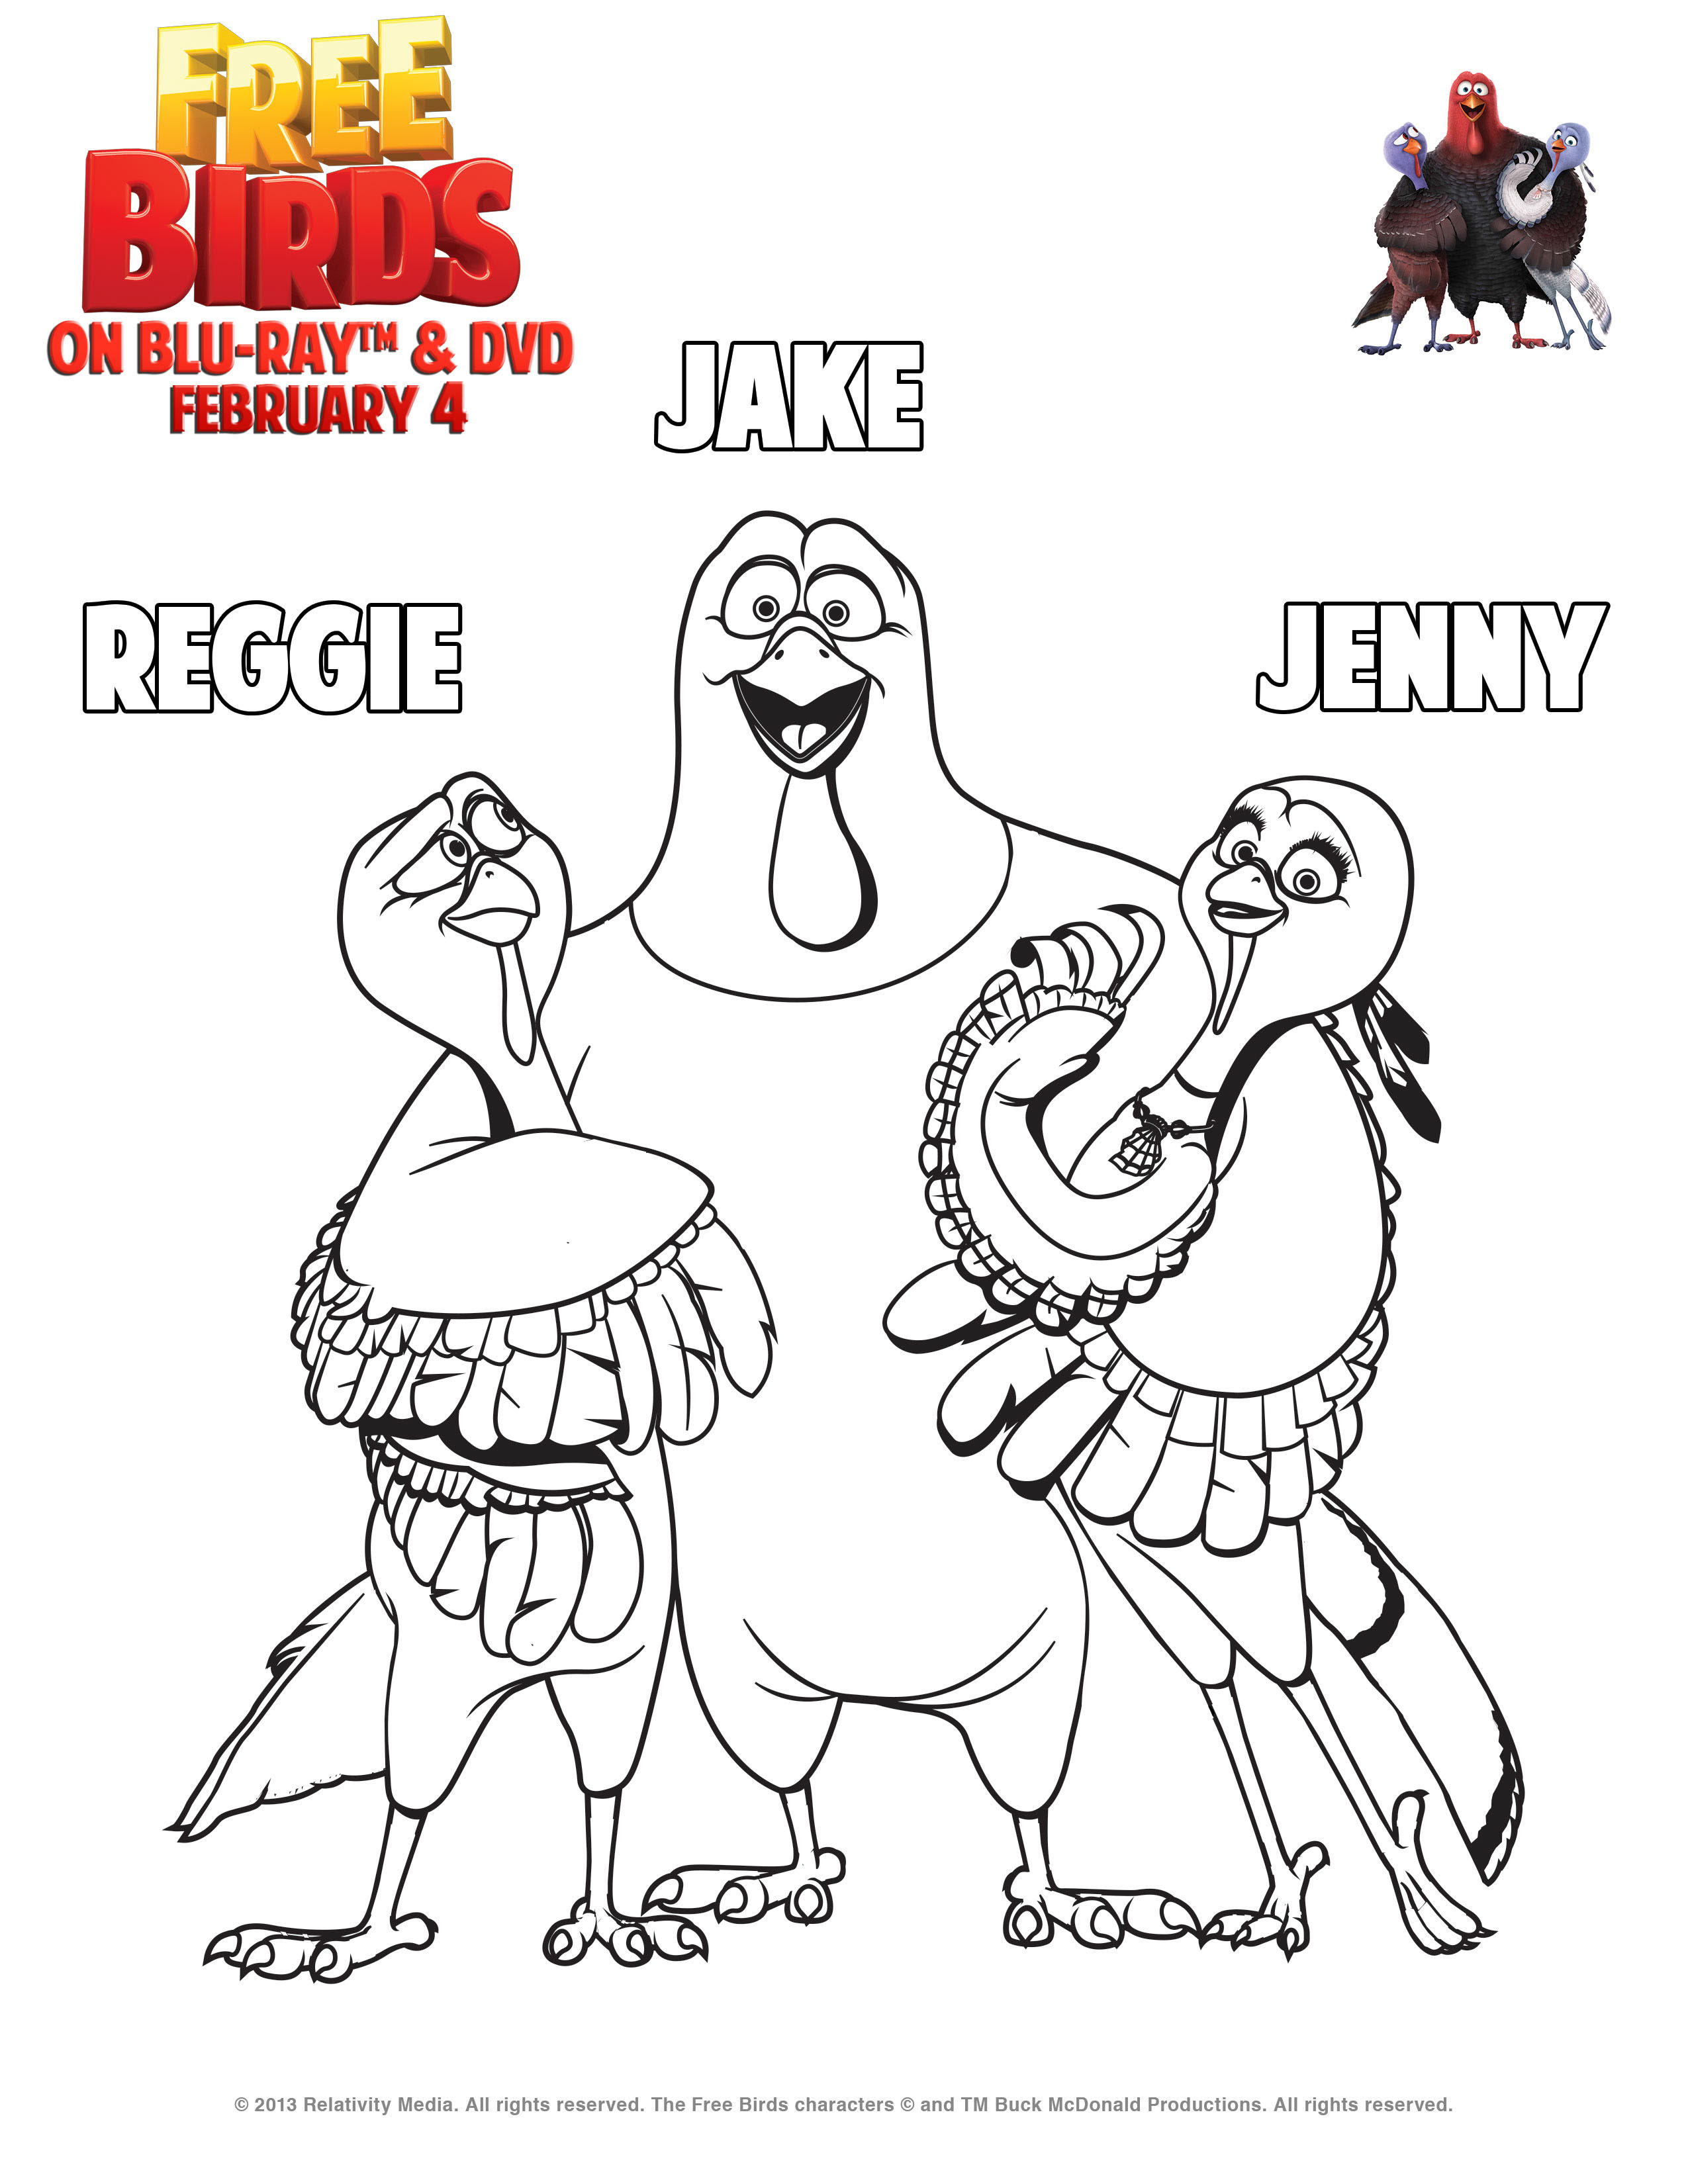 Free Birds Printable Coloring Pages and Activity Sheets ...